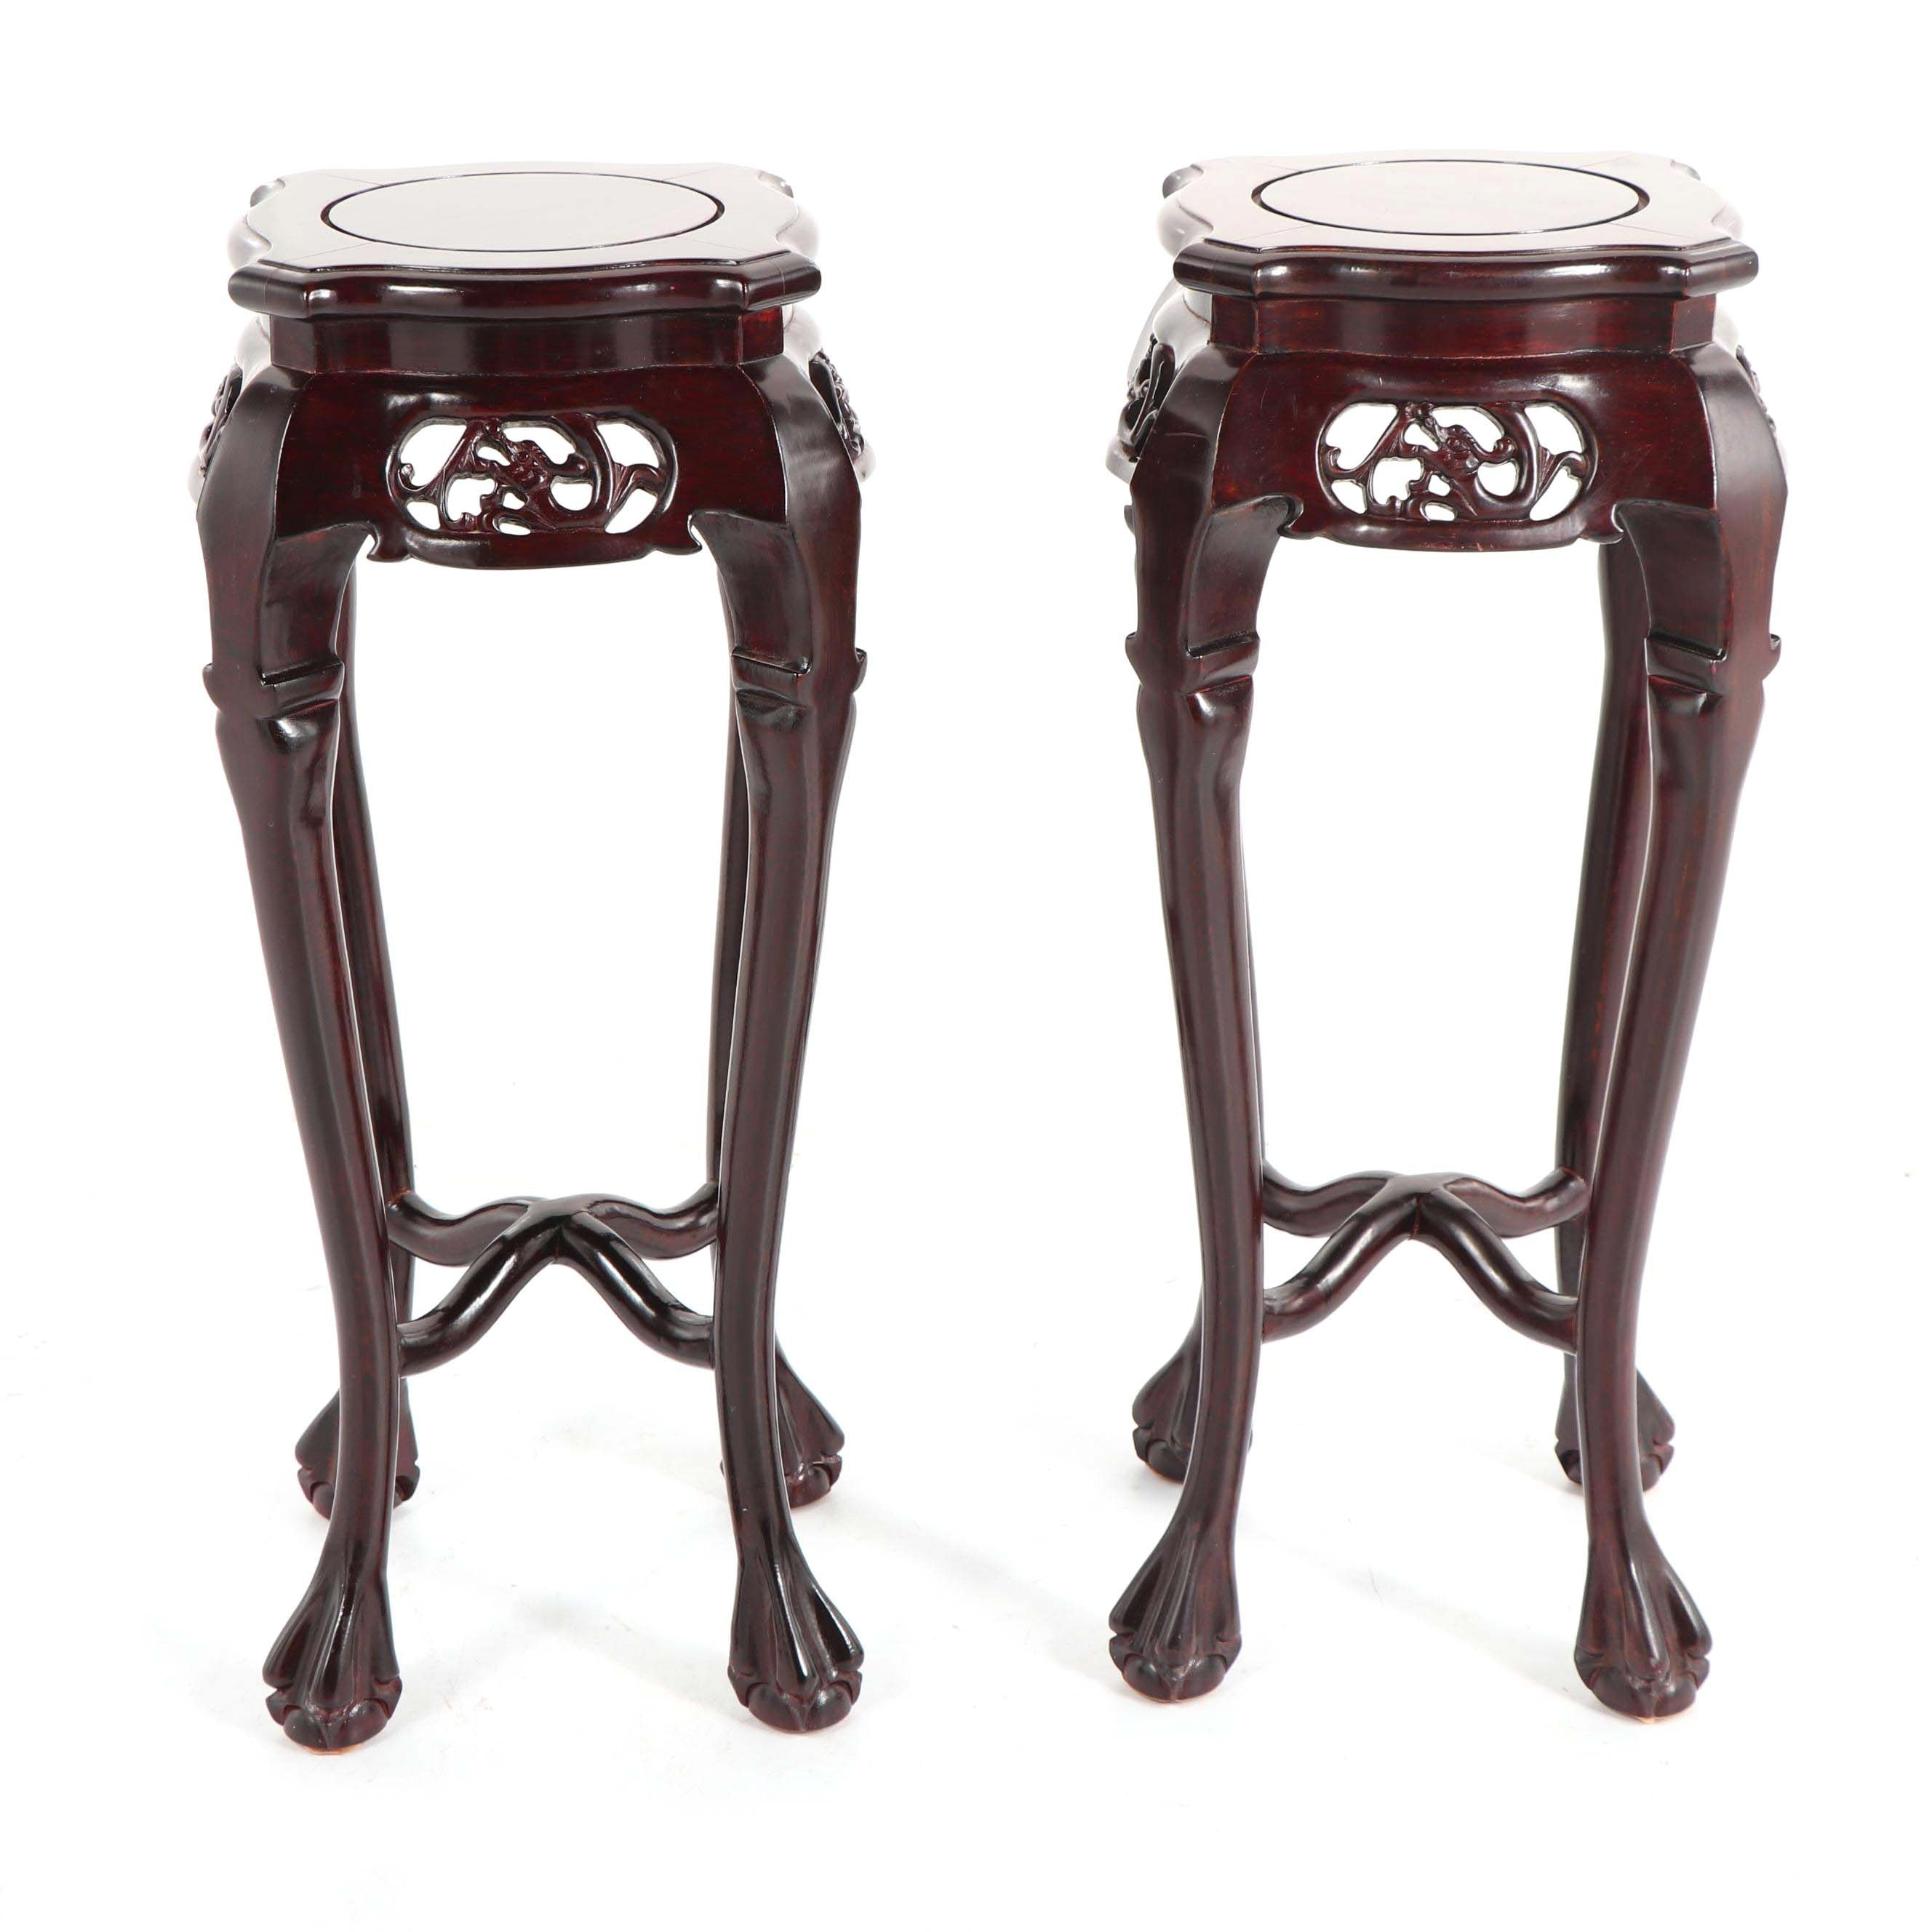 Chinese Rosewood Plant Stands, Late 20th Century